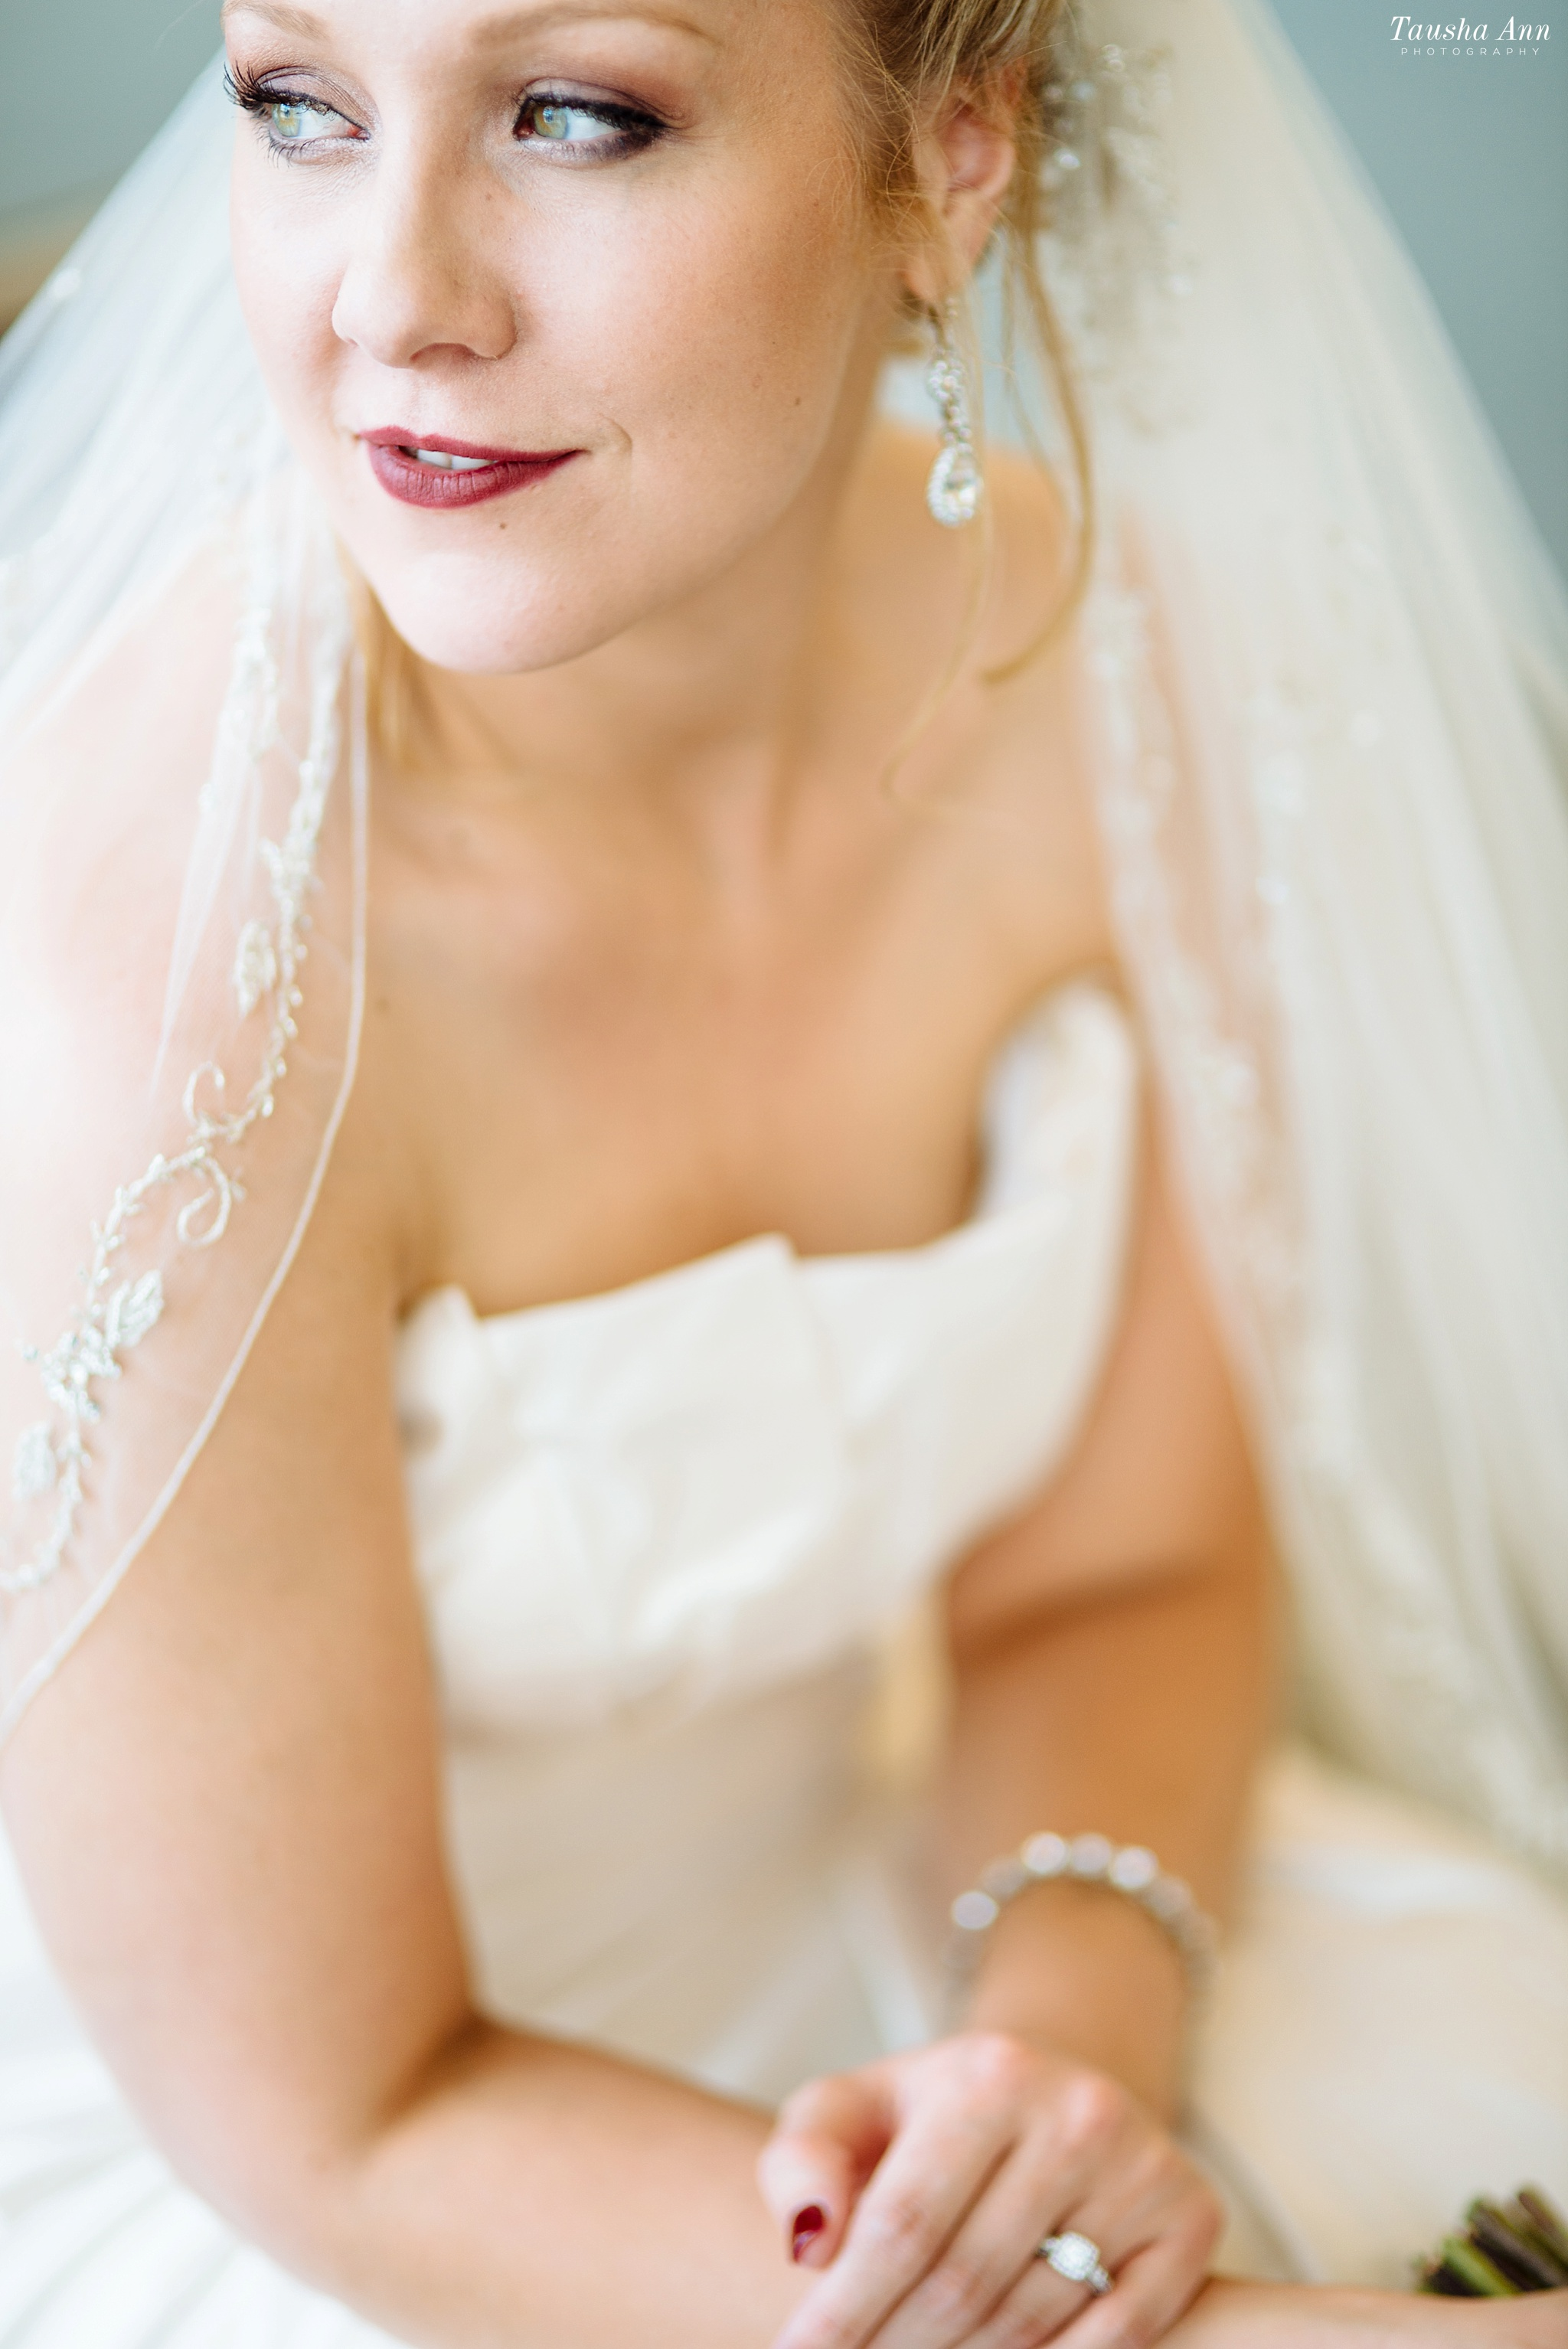 Stunning editoral image of bride looking away from camera. Very shallow depth of field.